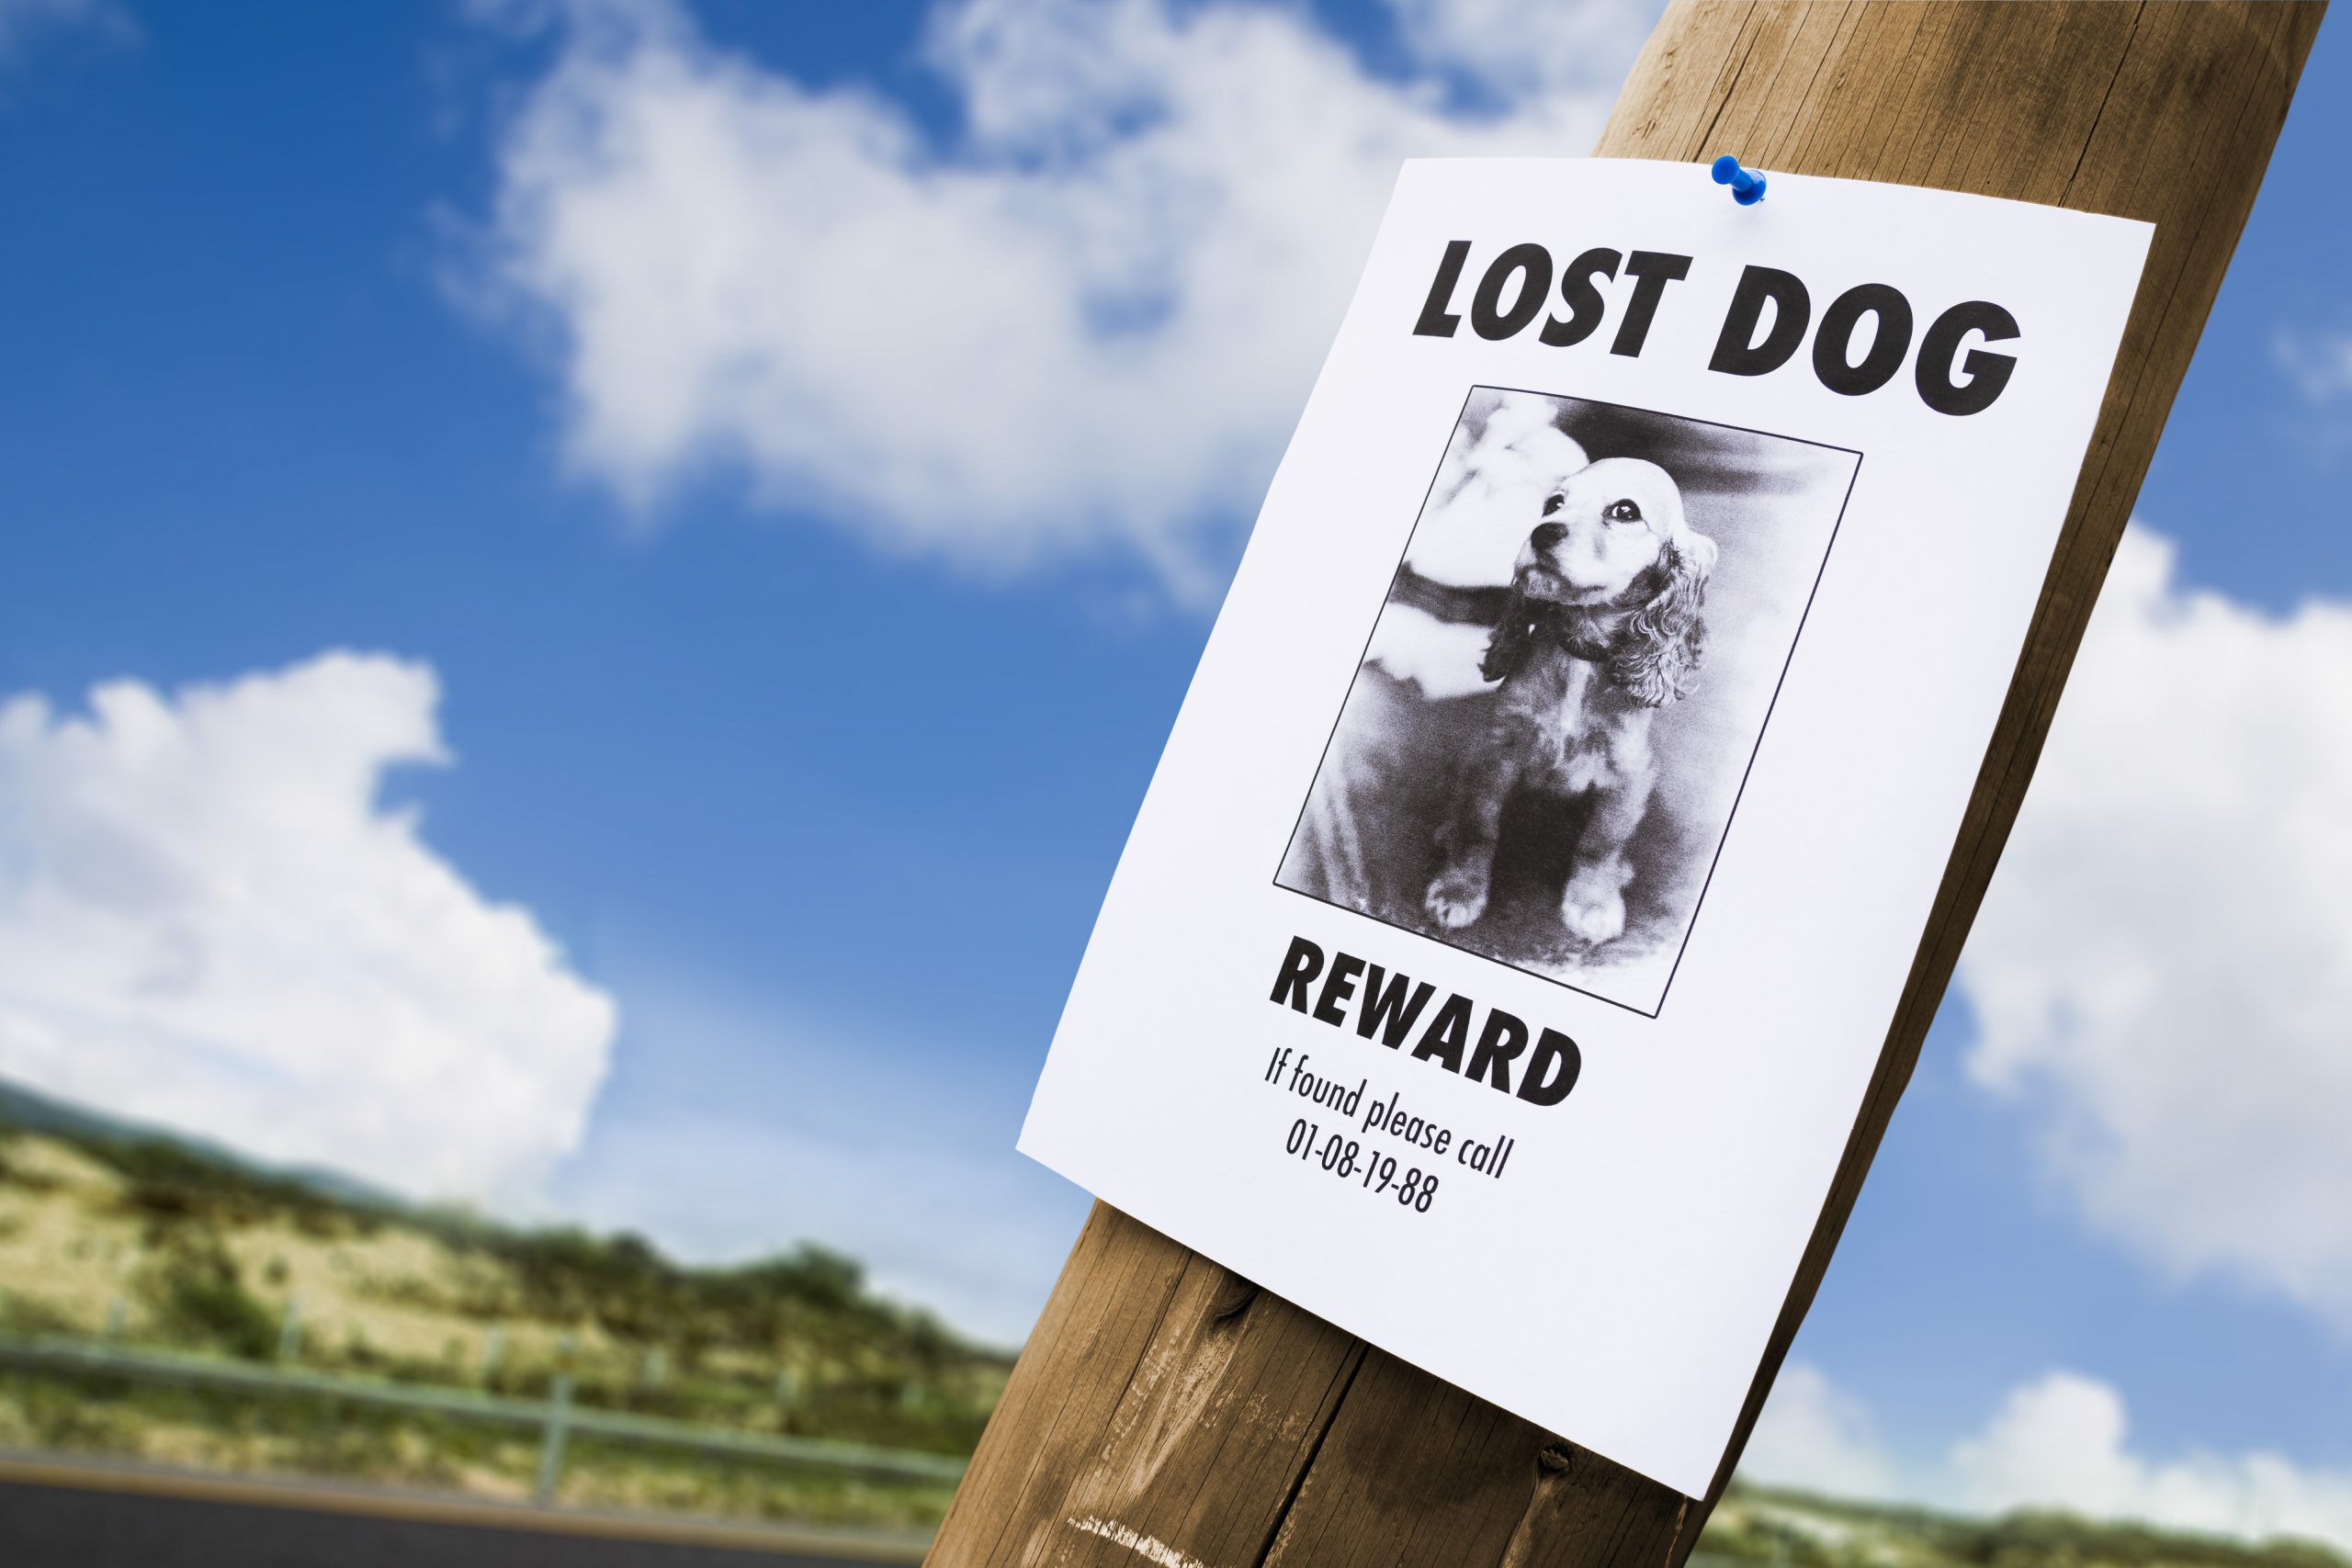 Rover's gone missing? Top 5 tips for finding a lost dog